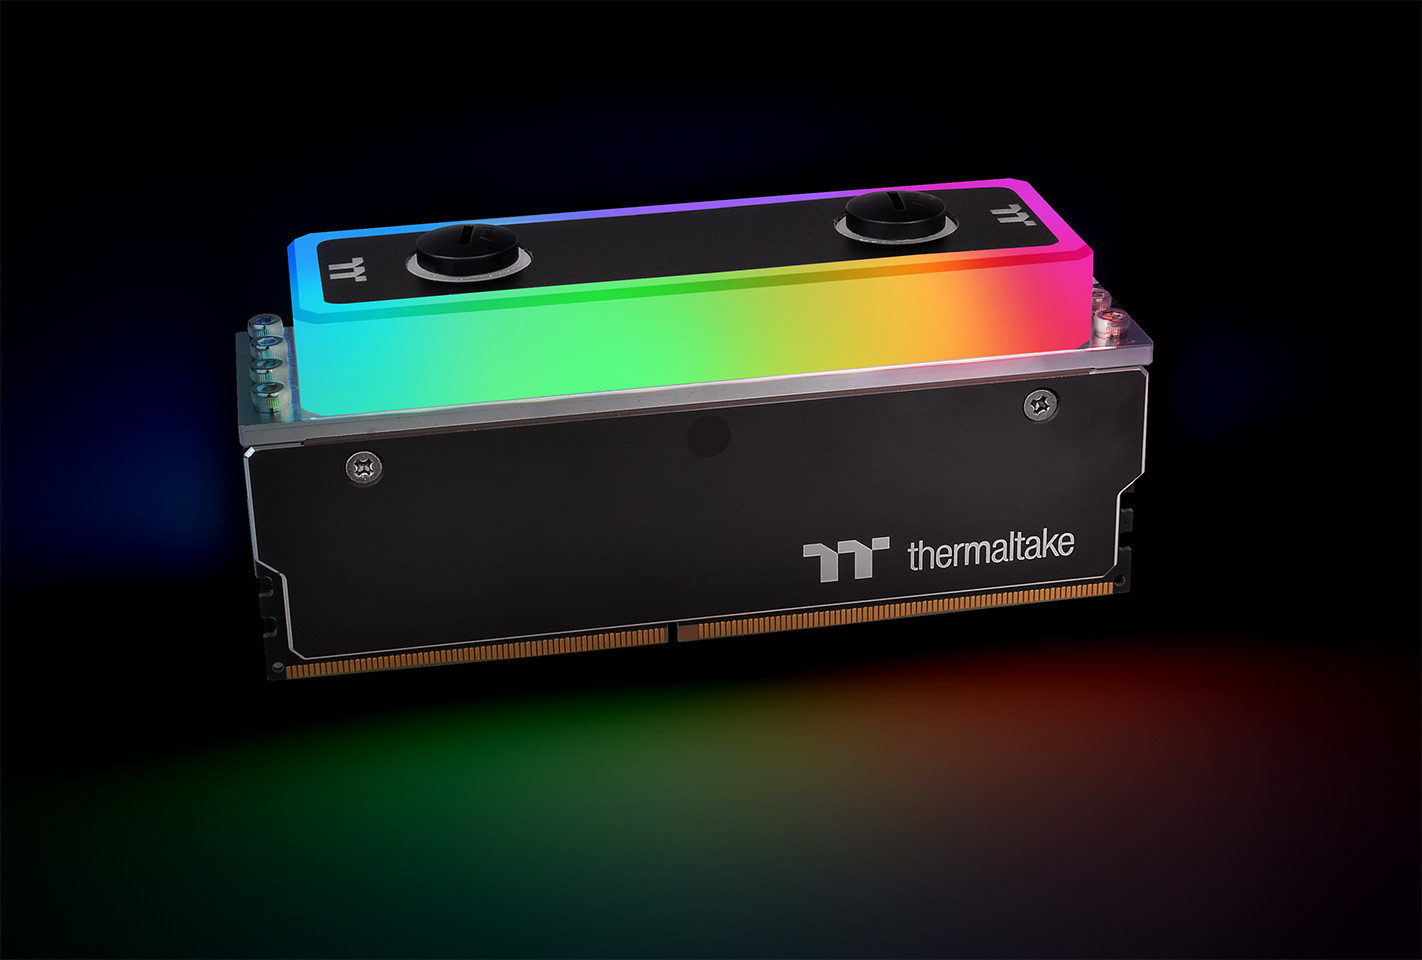 Thermaltake Launches WaterRam RGB Liquid Cooling DDR4 Memory 3600MHz